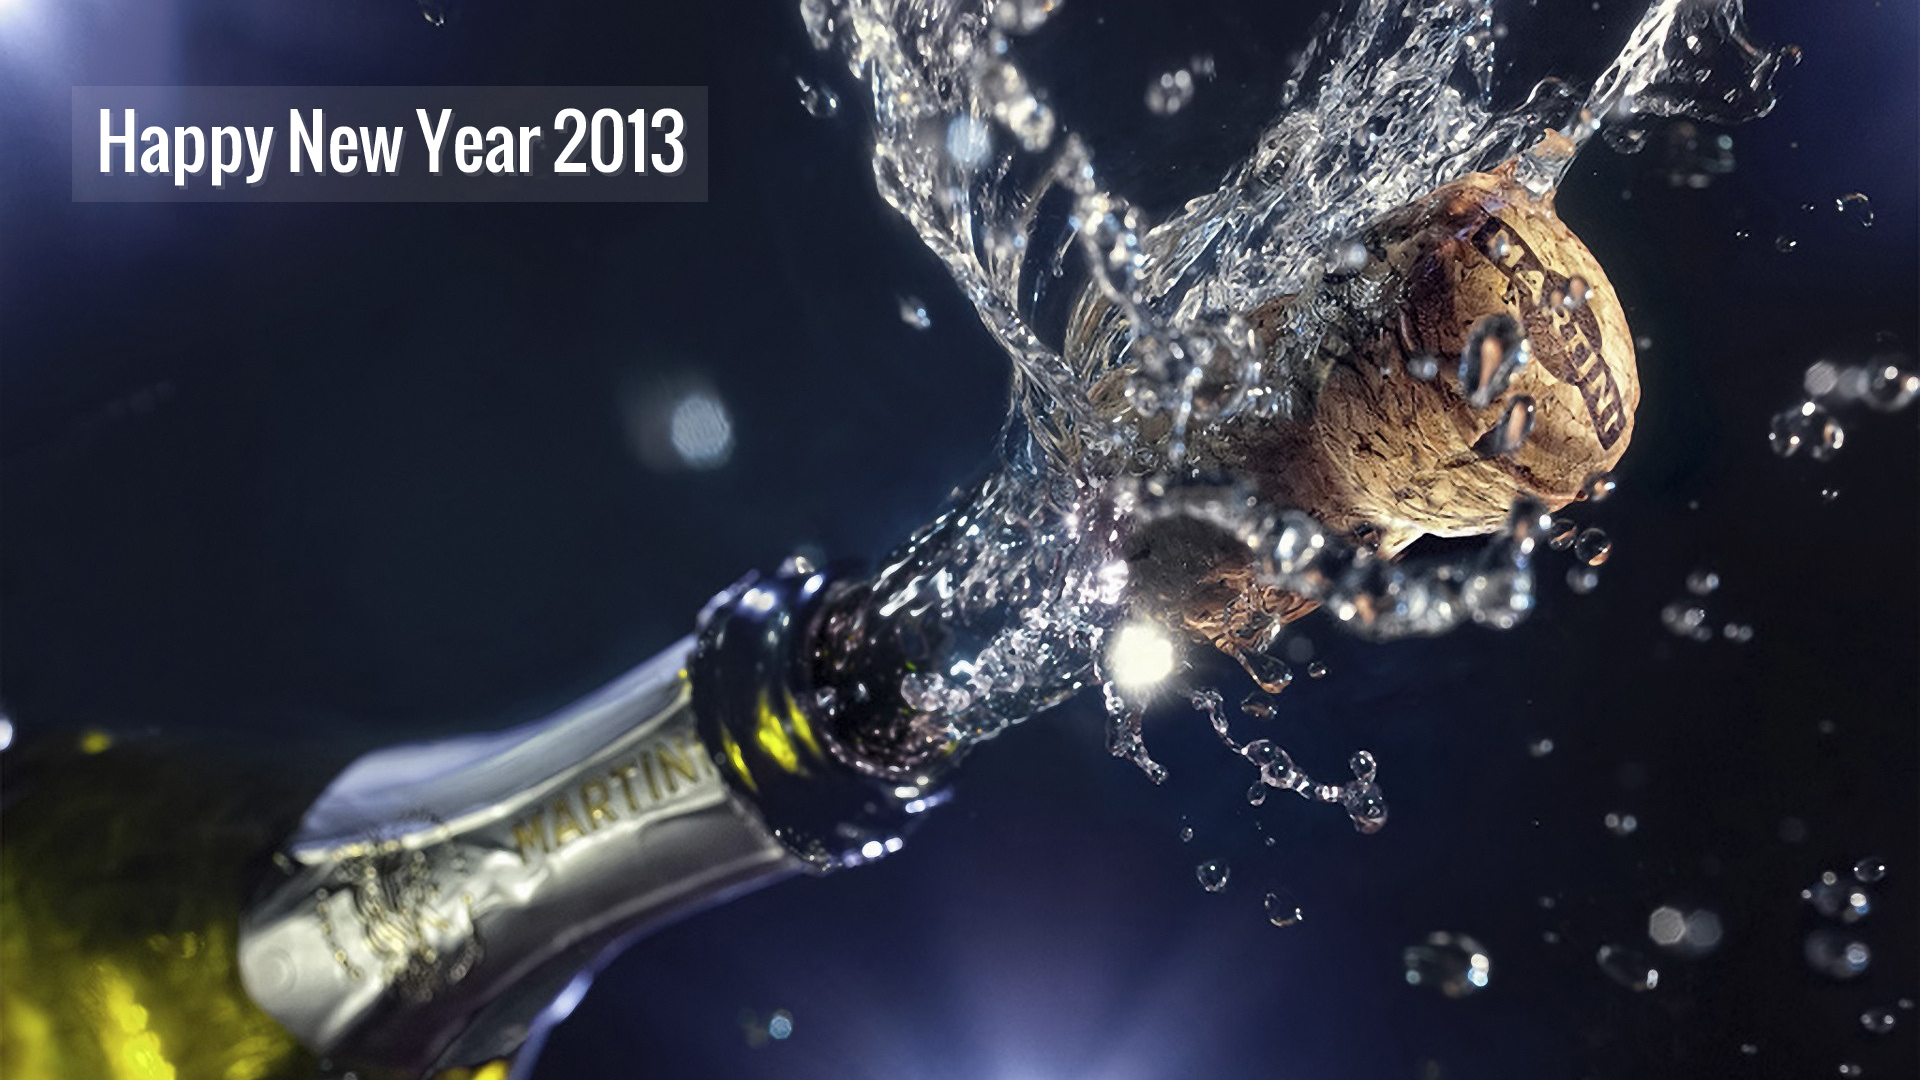 happy new year 2013 wallpaper full hd 1080p edesign tuts